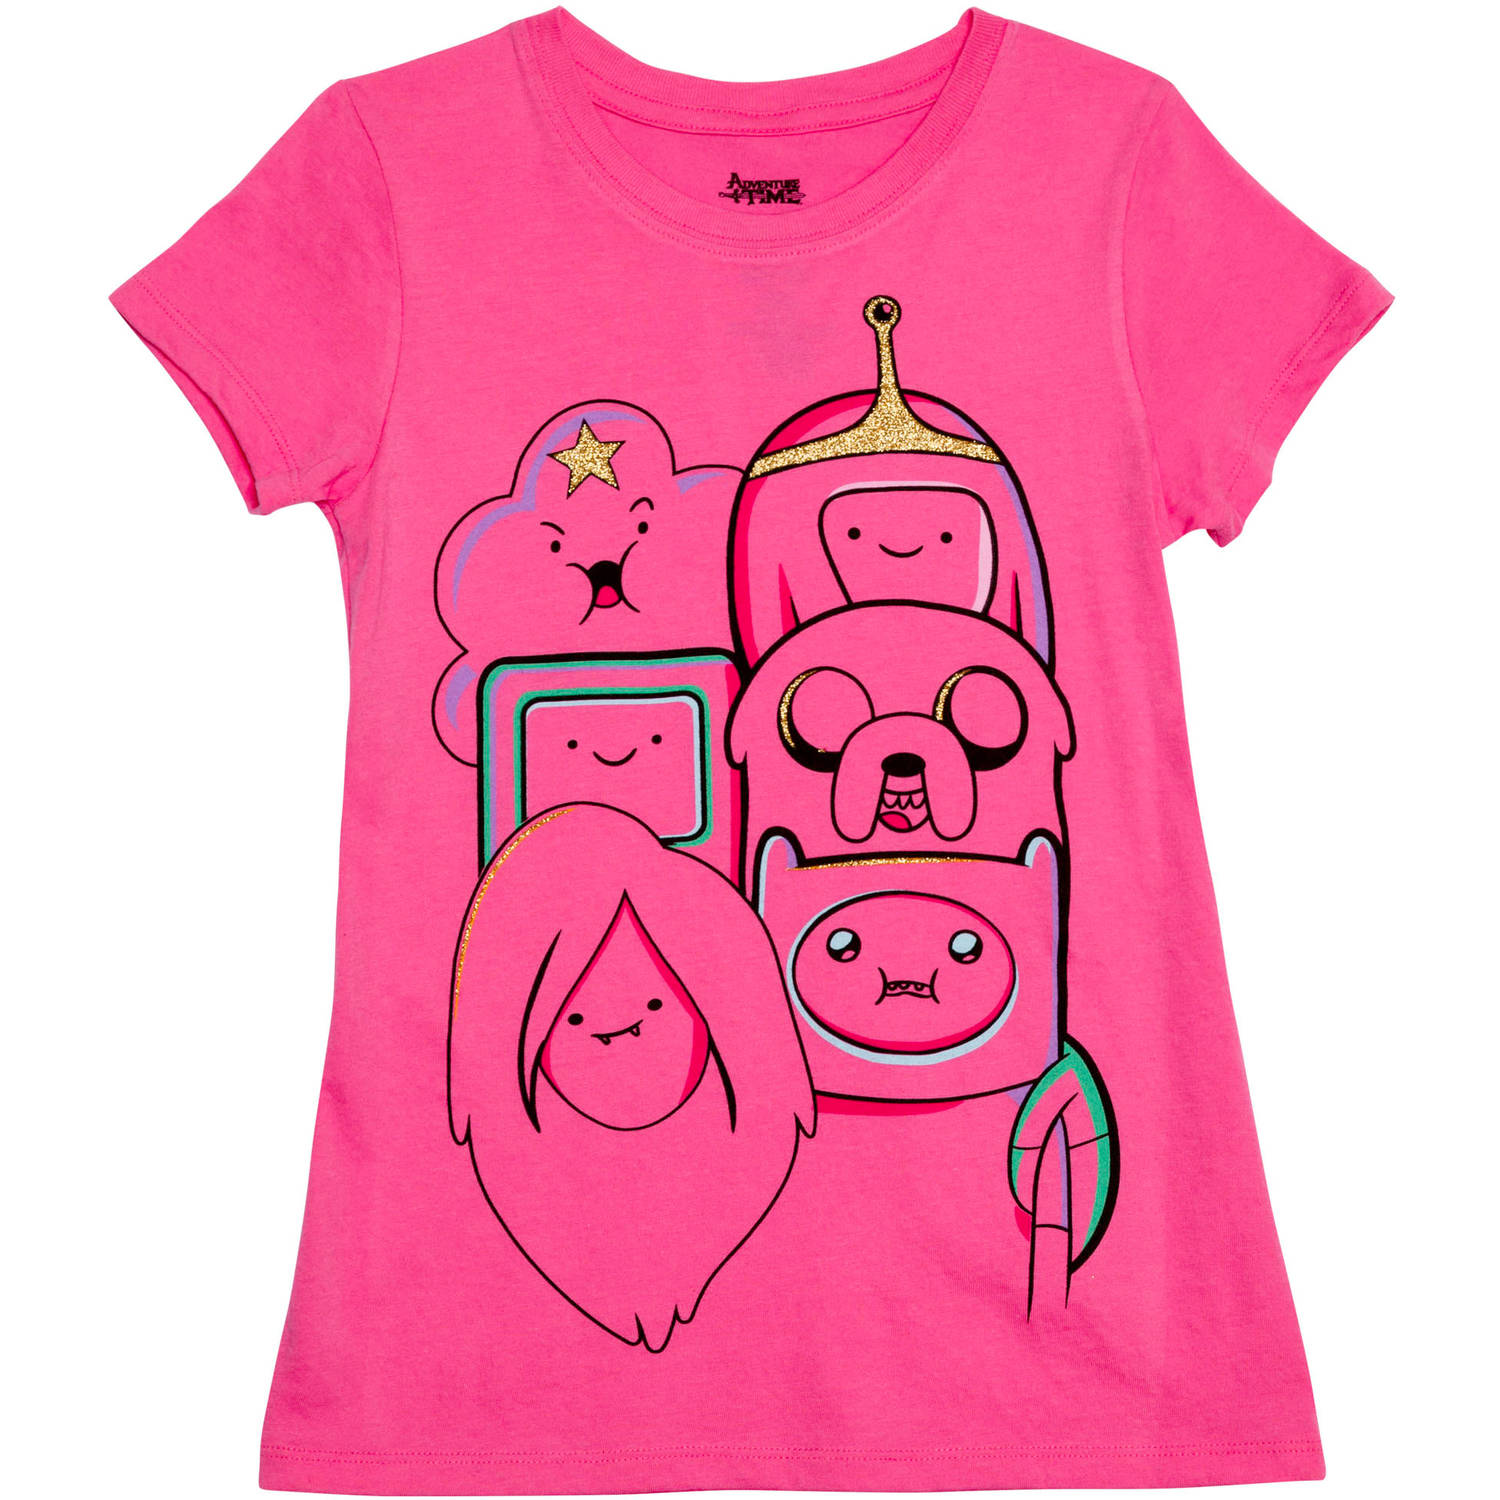 Girls' and Friends Short Sleeve Crew Neck Graphic Tee